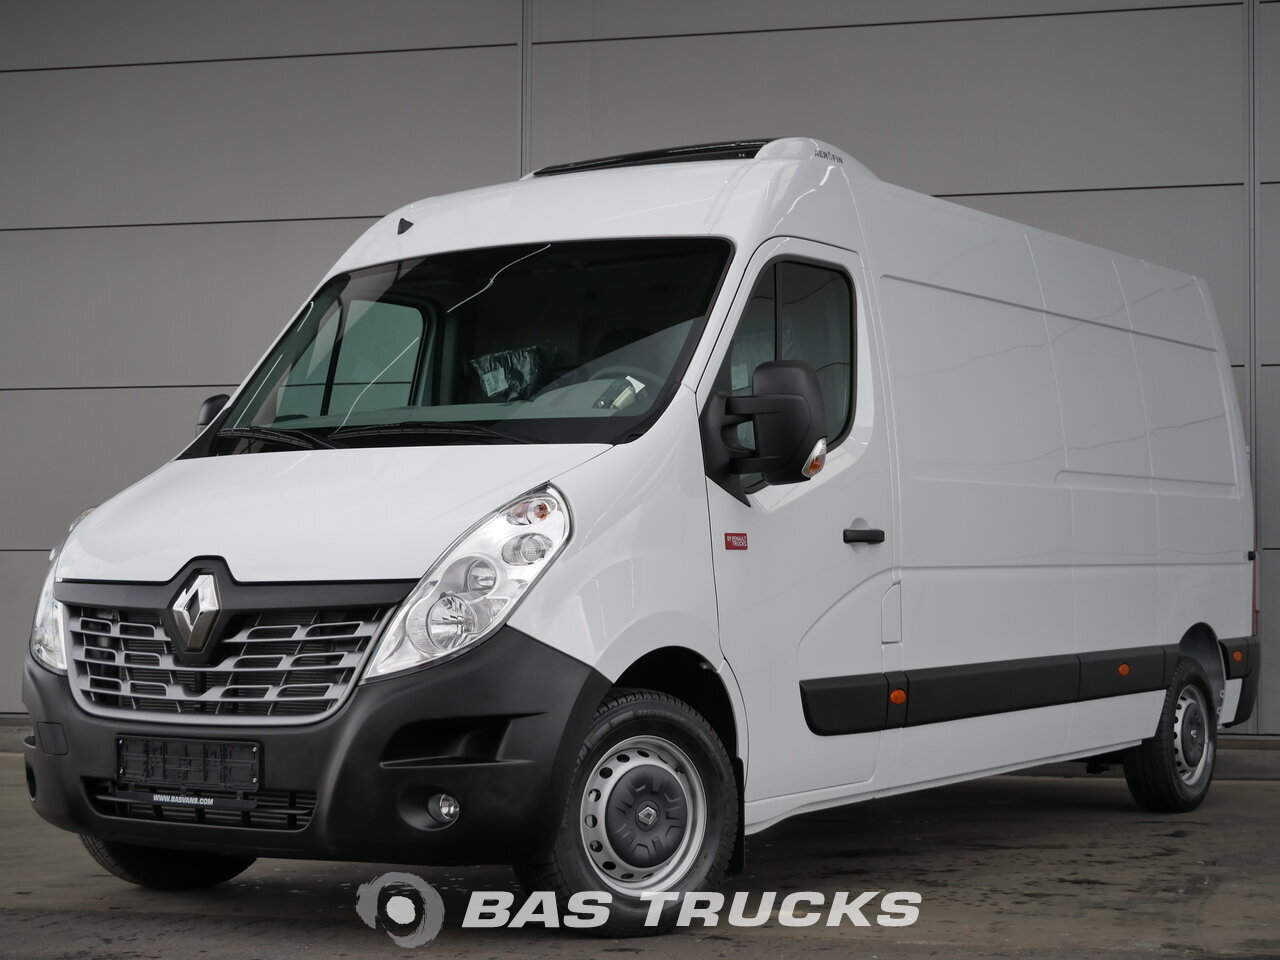 renault master lcv 29400 bas trucks. Black Bedroom Furniture Sets. Home Design Ideas